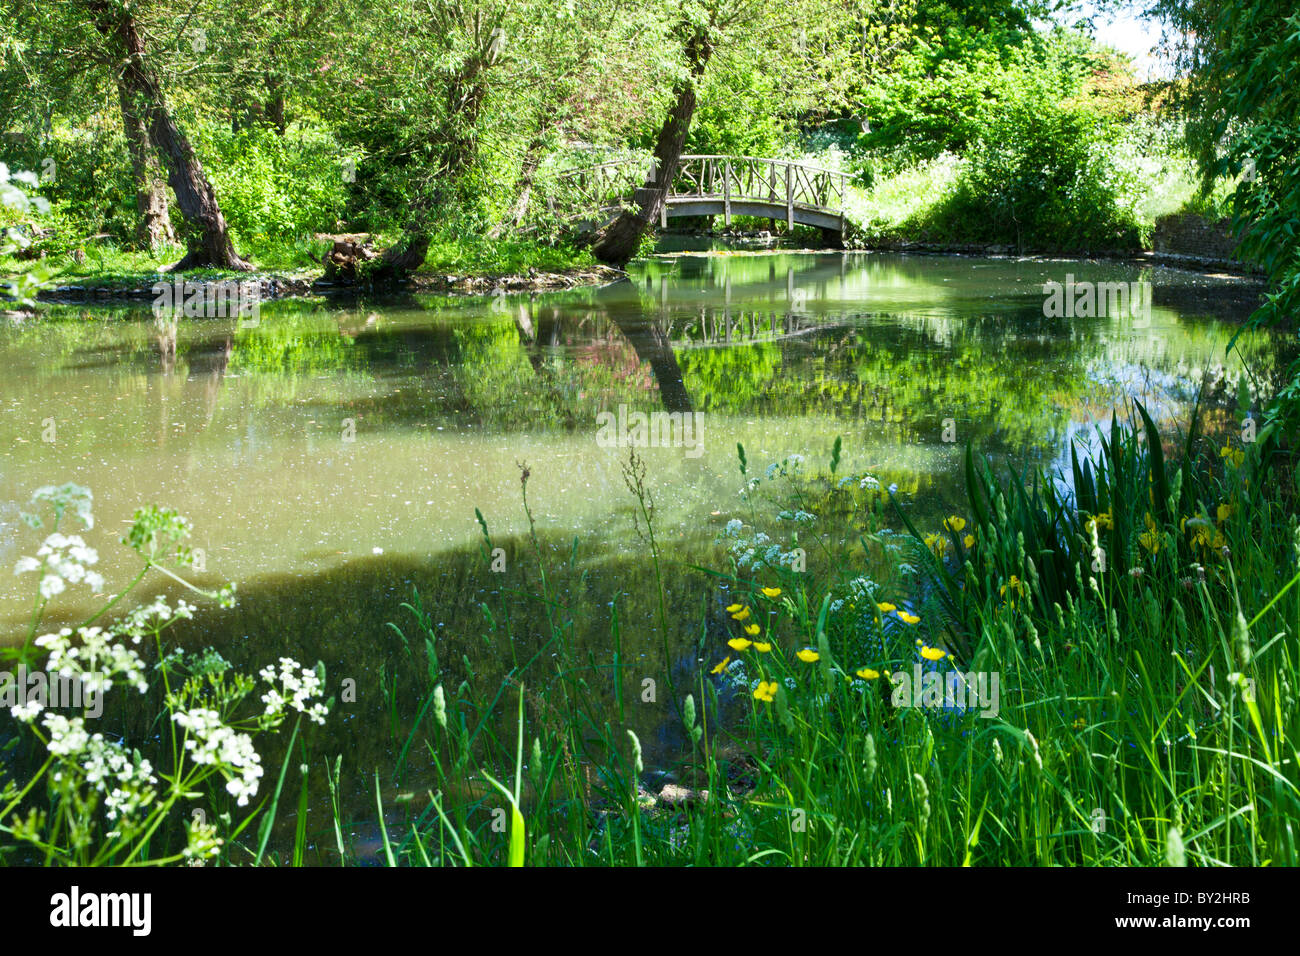 A large ornamental pond or small lake with a rustic wooden for English garden pool